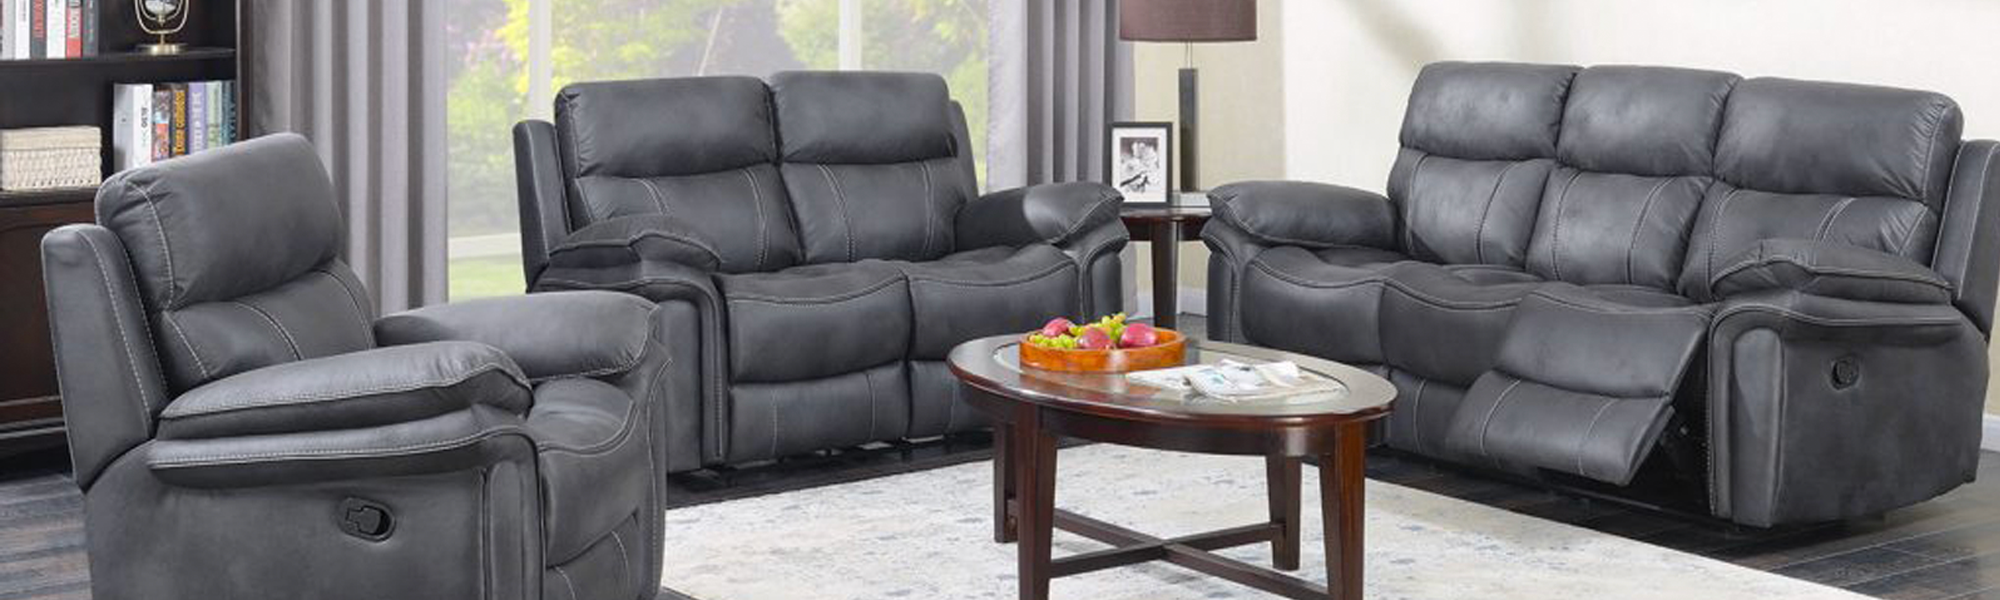 3 Seater Fabric Manual Recliners